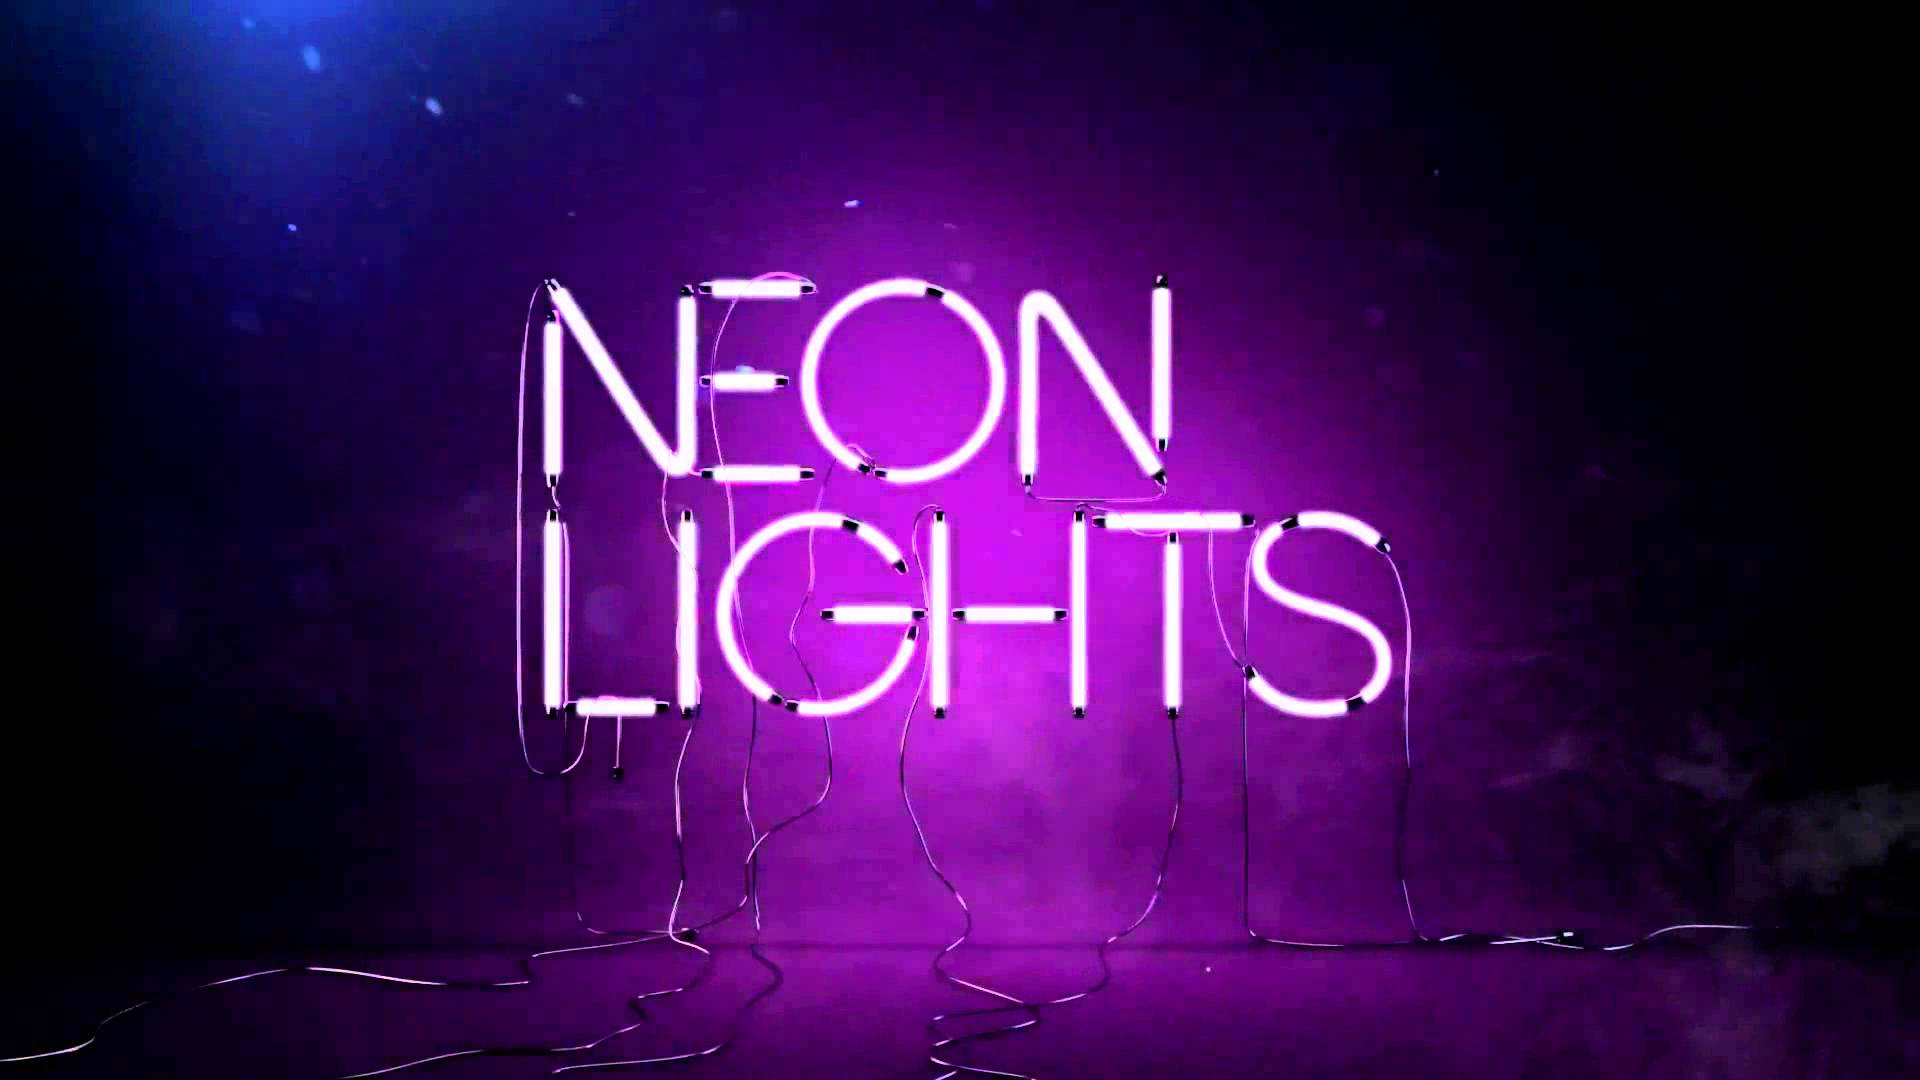 Neon Lights Wide Demi Lovato